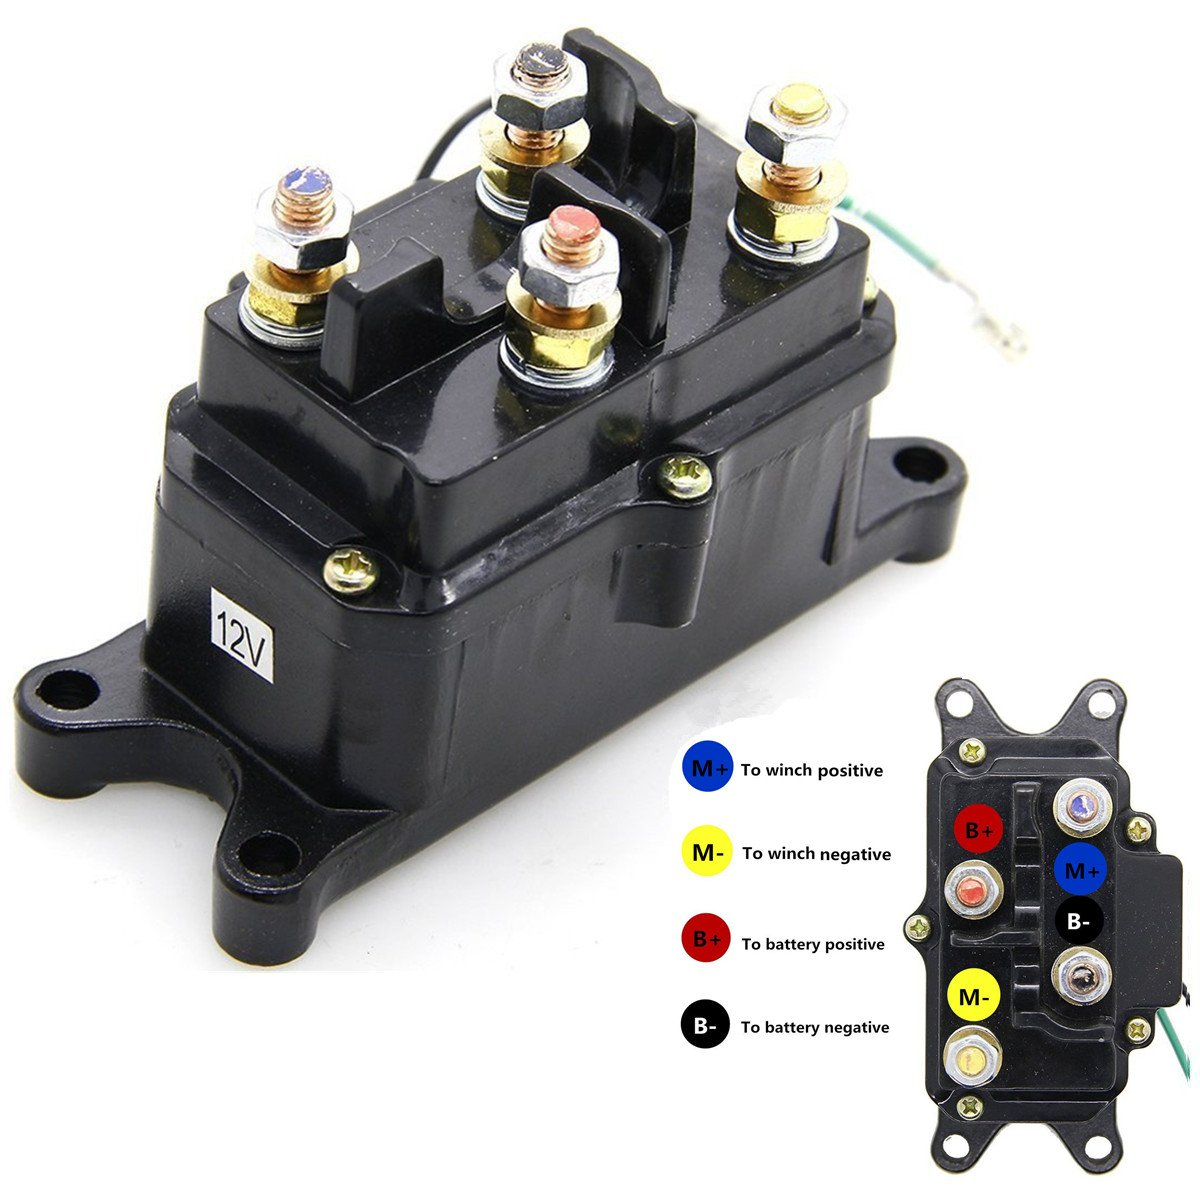 12V 250A Winch Solenoid Relay Contactor Thumb Truck for ATV UTV 4x4 vehicles by KanSmart